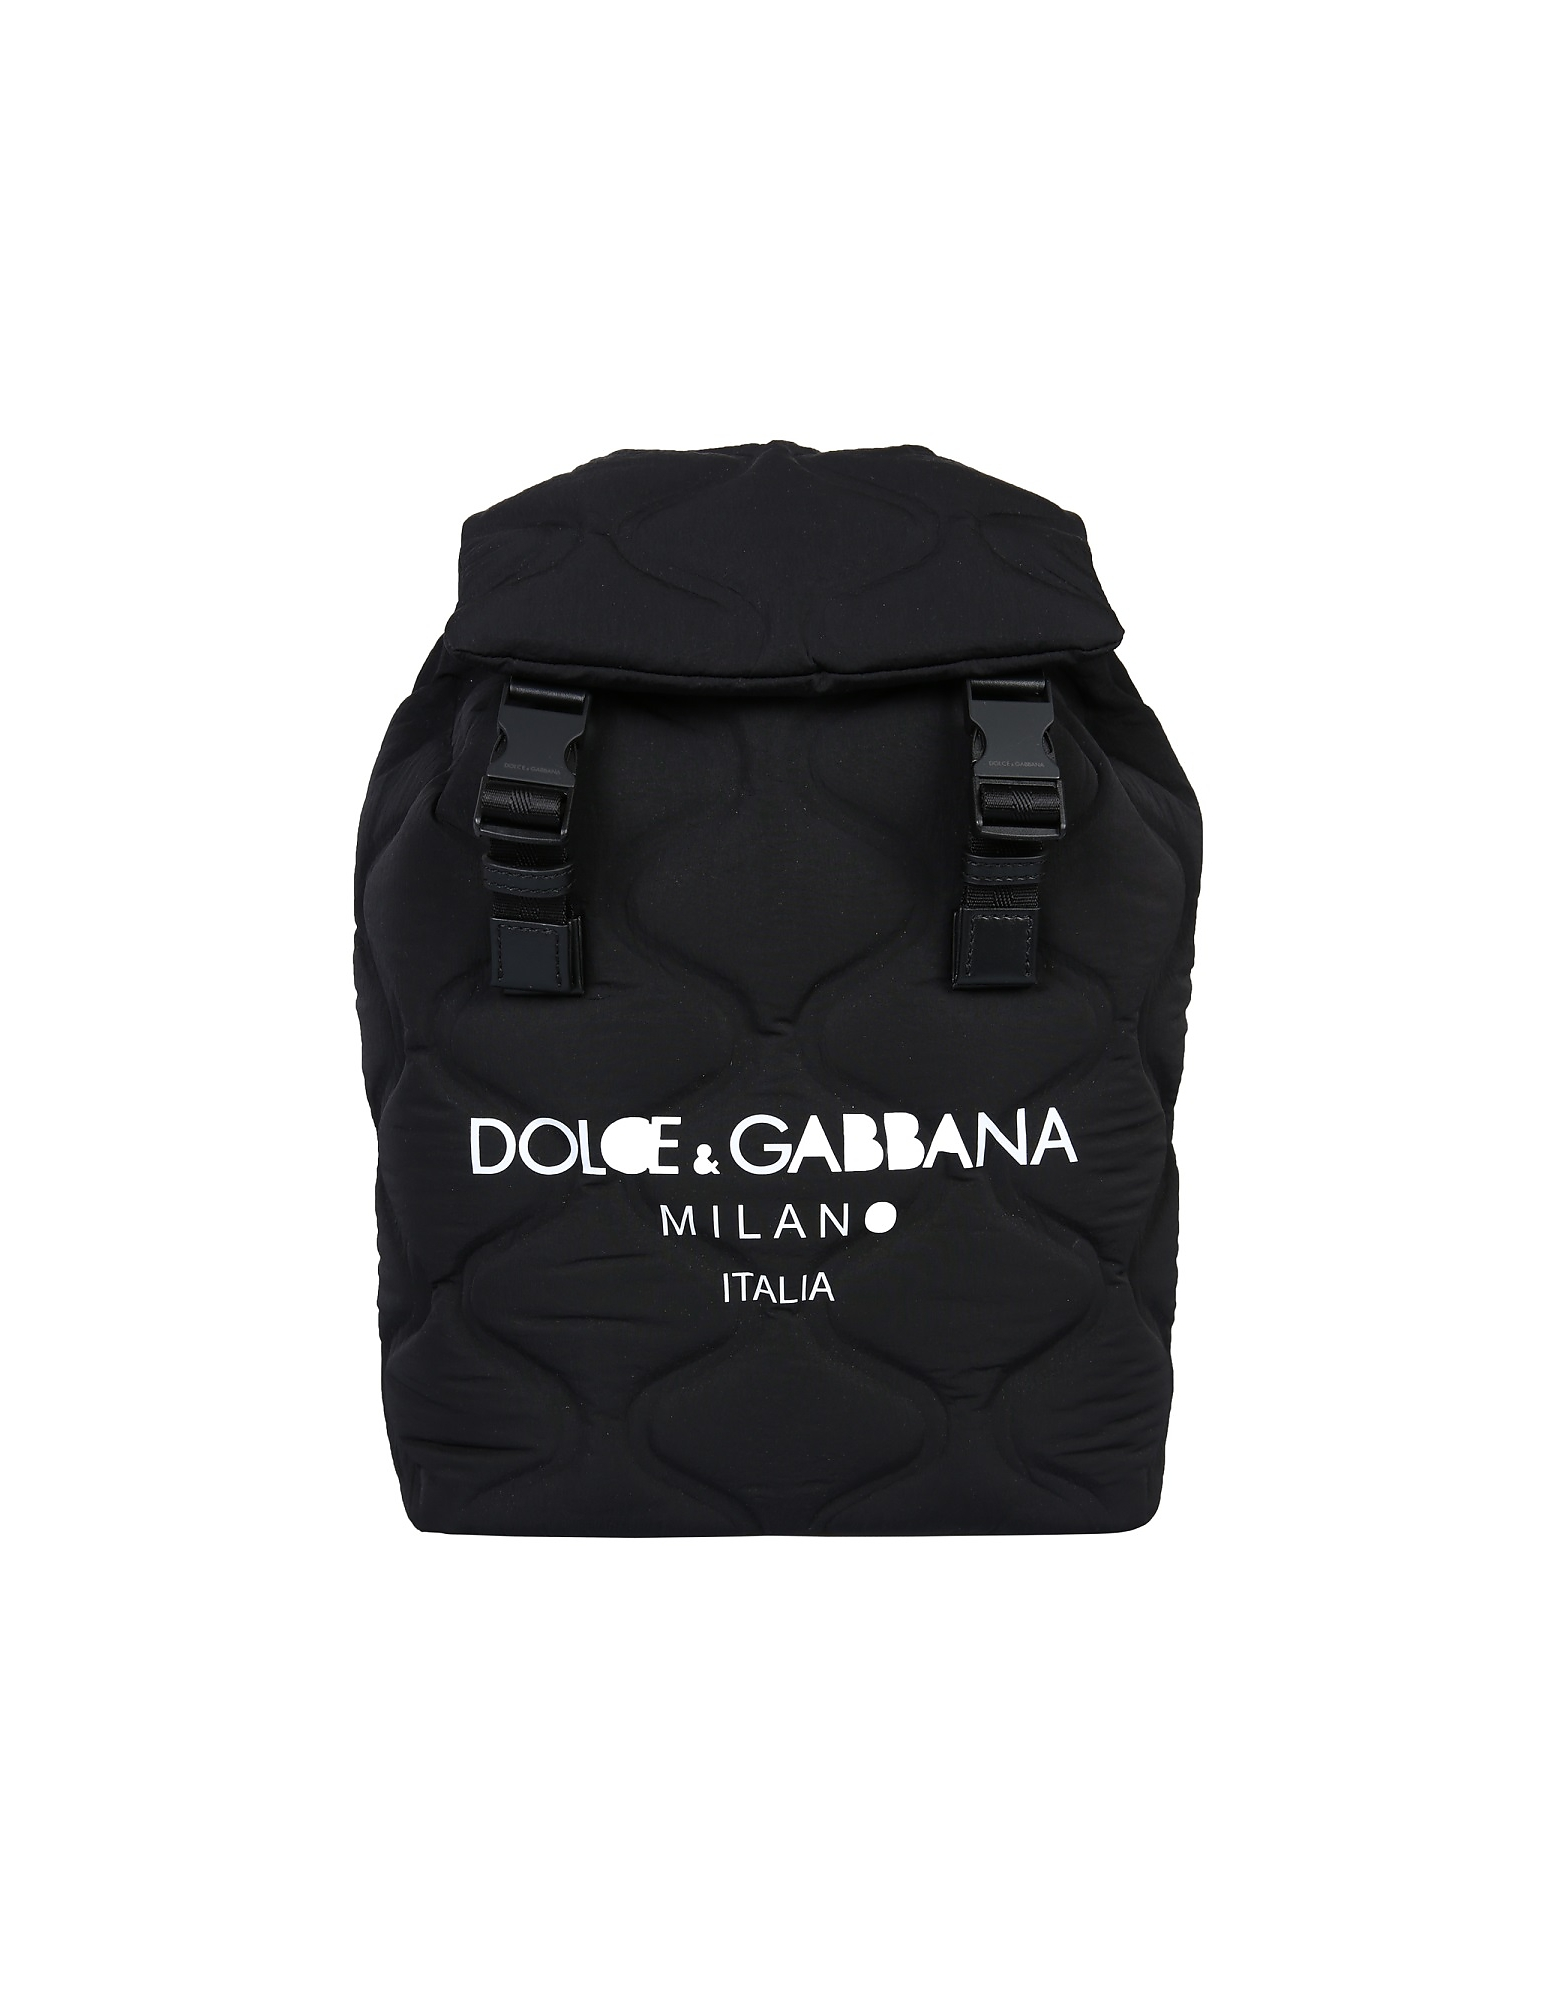 Dolce & Gabbana Designer Men's Bags, Palermo Backpack